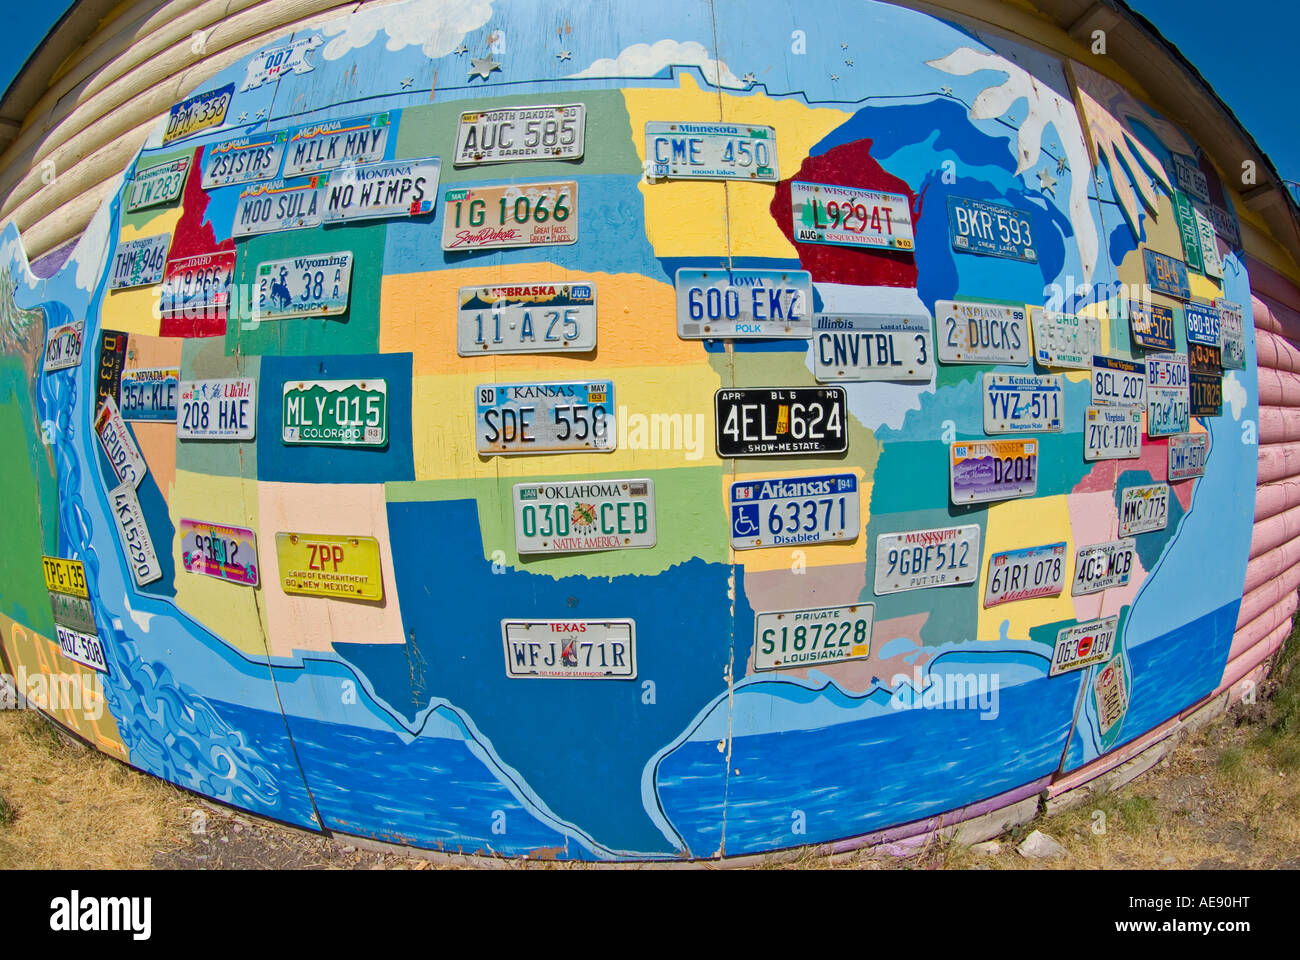 A map of the USA with state license plates, at Two Sisters ... State License Plate Map Usa on basketball usa map, state usa map, color usa map, driving usa map, art usa map, paint usa map, time usa map, list 50 states and capitals map, license plate world map, license plate map art, reverse usa map, license plates for each state, motorcycle usa map, flag usa map, decals usa map, golf usa map, baseball usa map, map usa map, leapfrog interactive united states map, watercolor usa map,